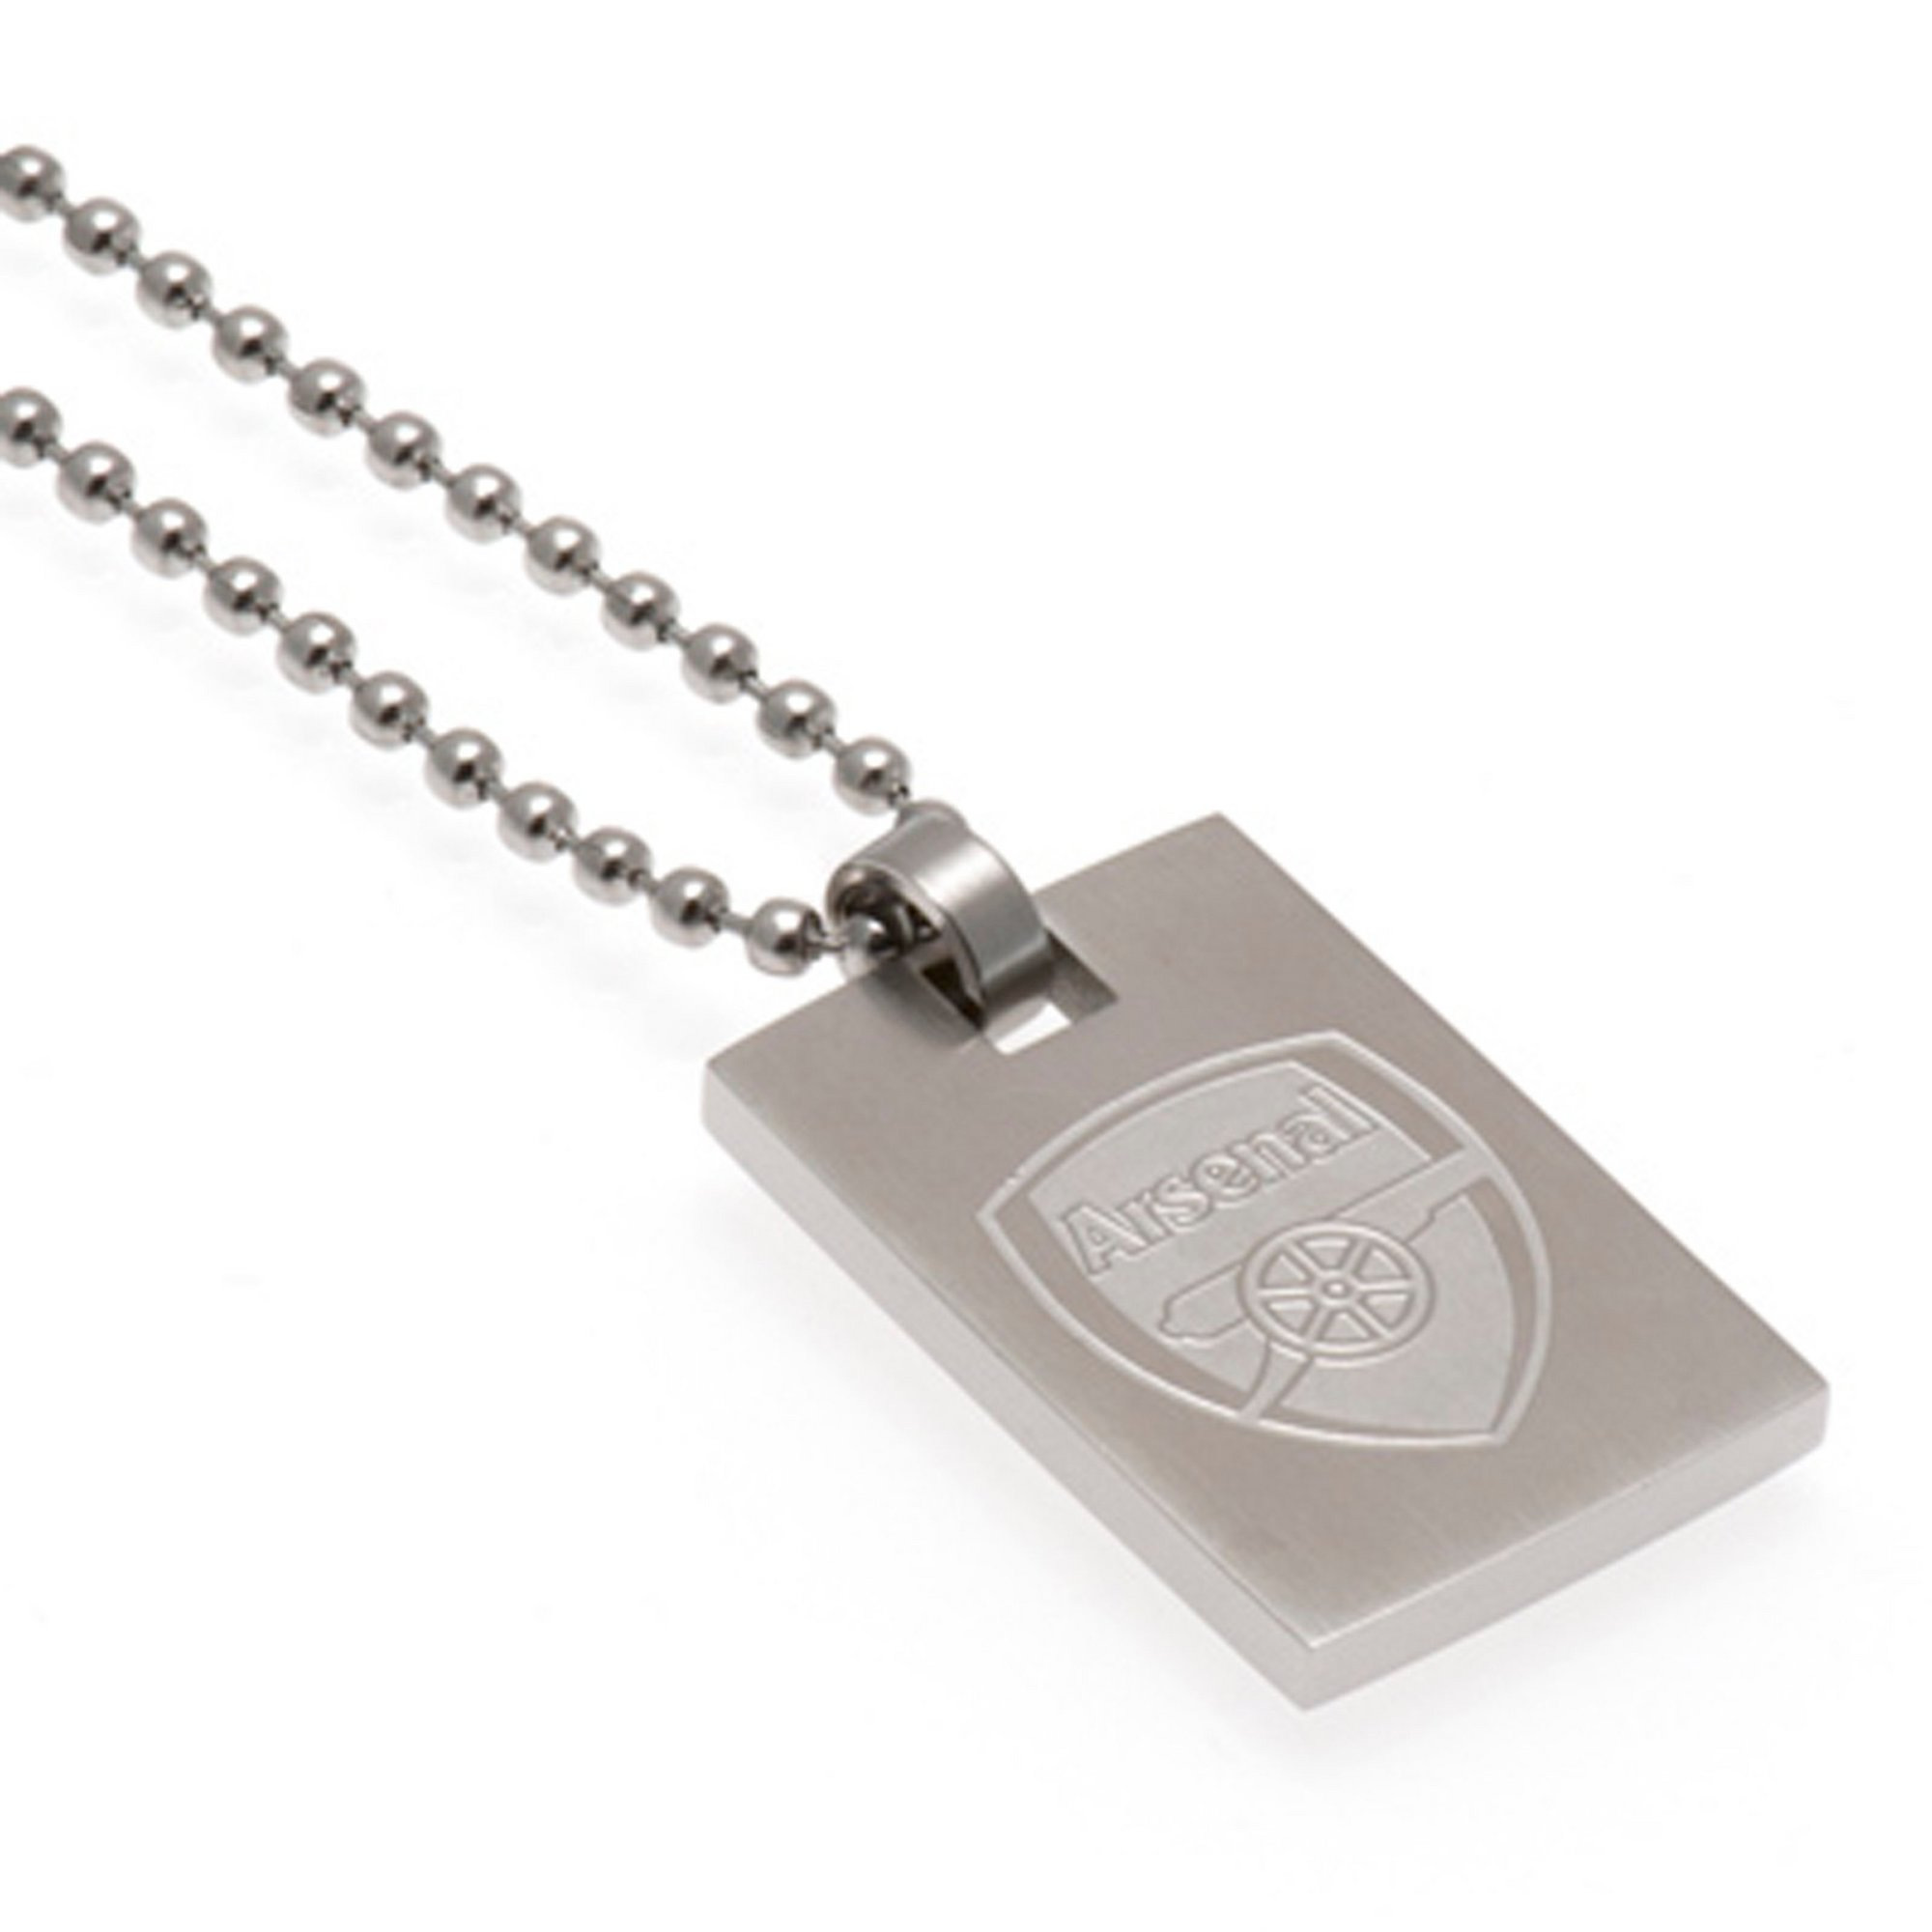 Image of Arsenal FC Crest Dog Tag and Ball Chain